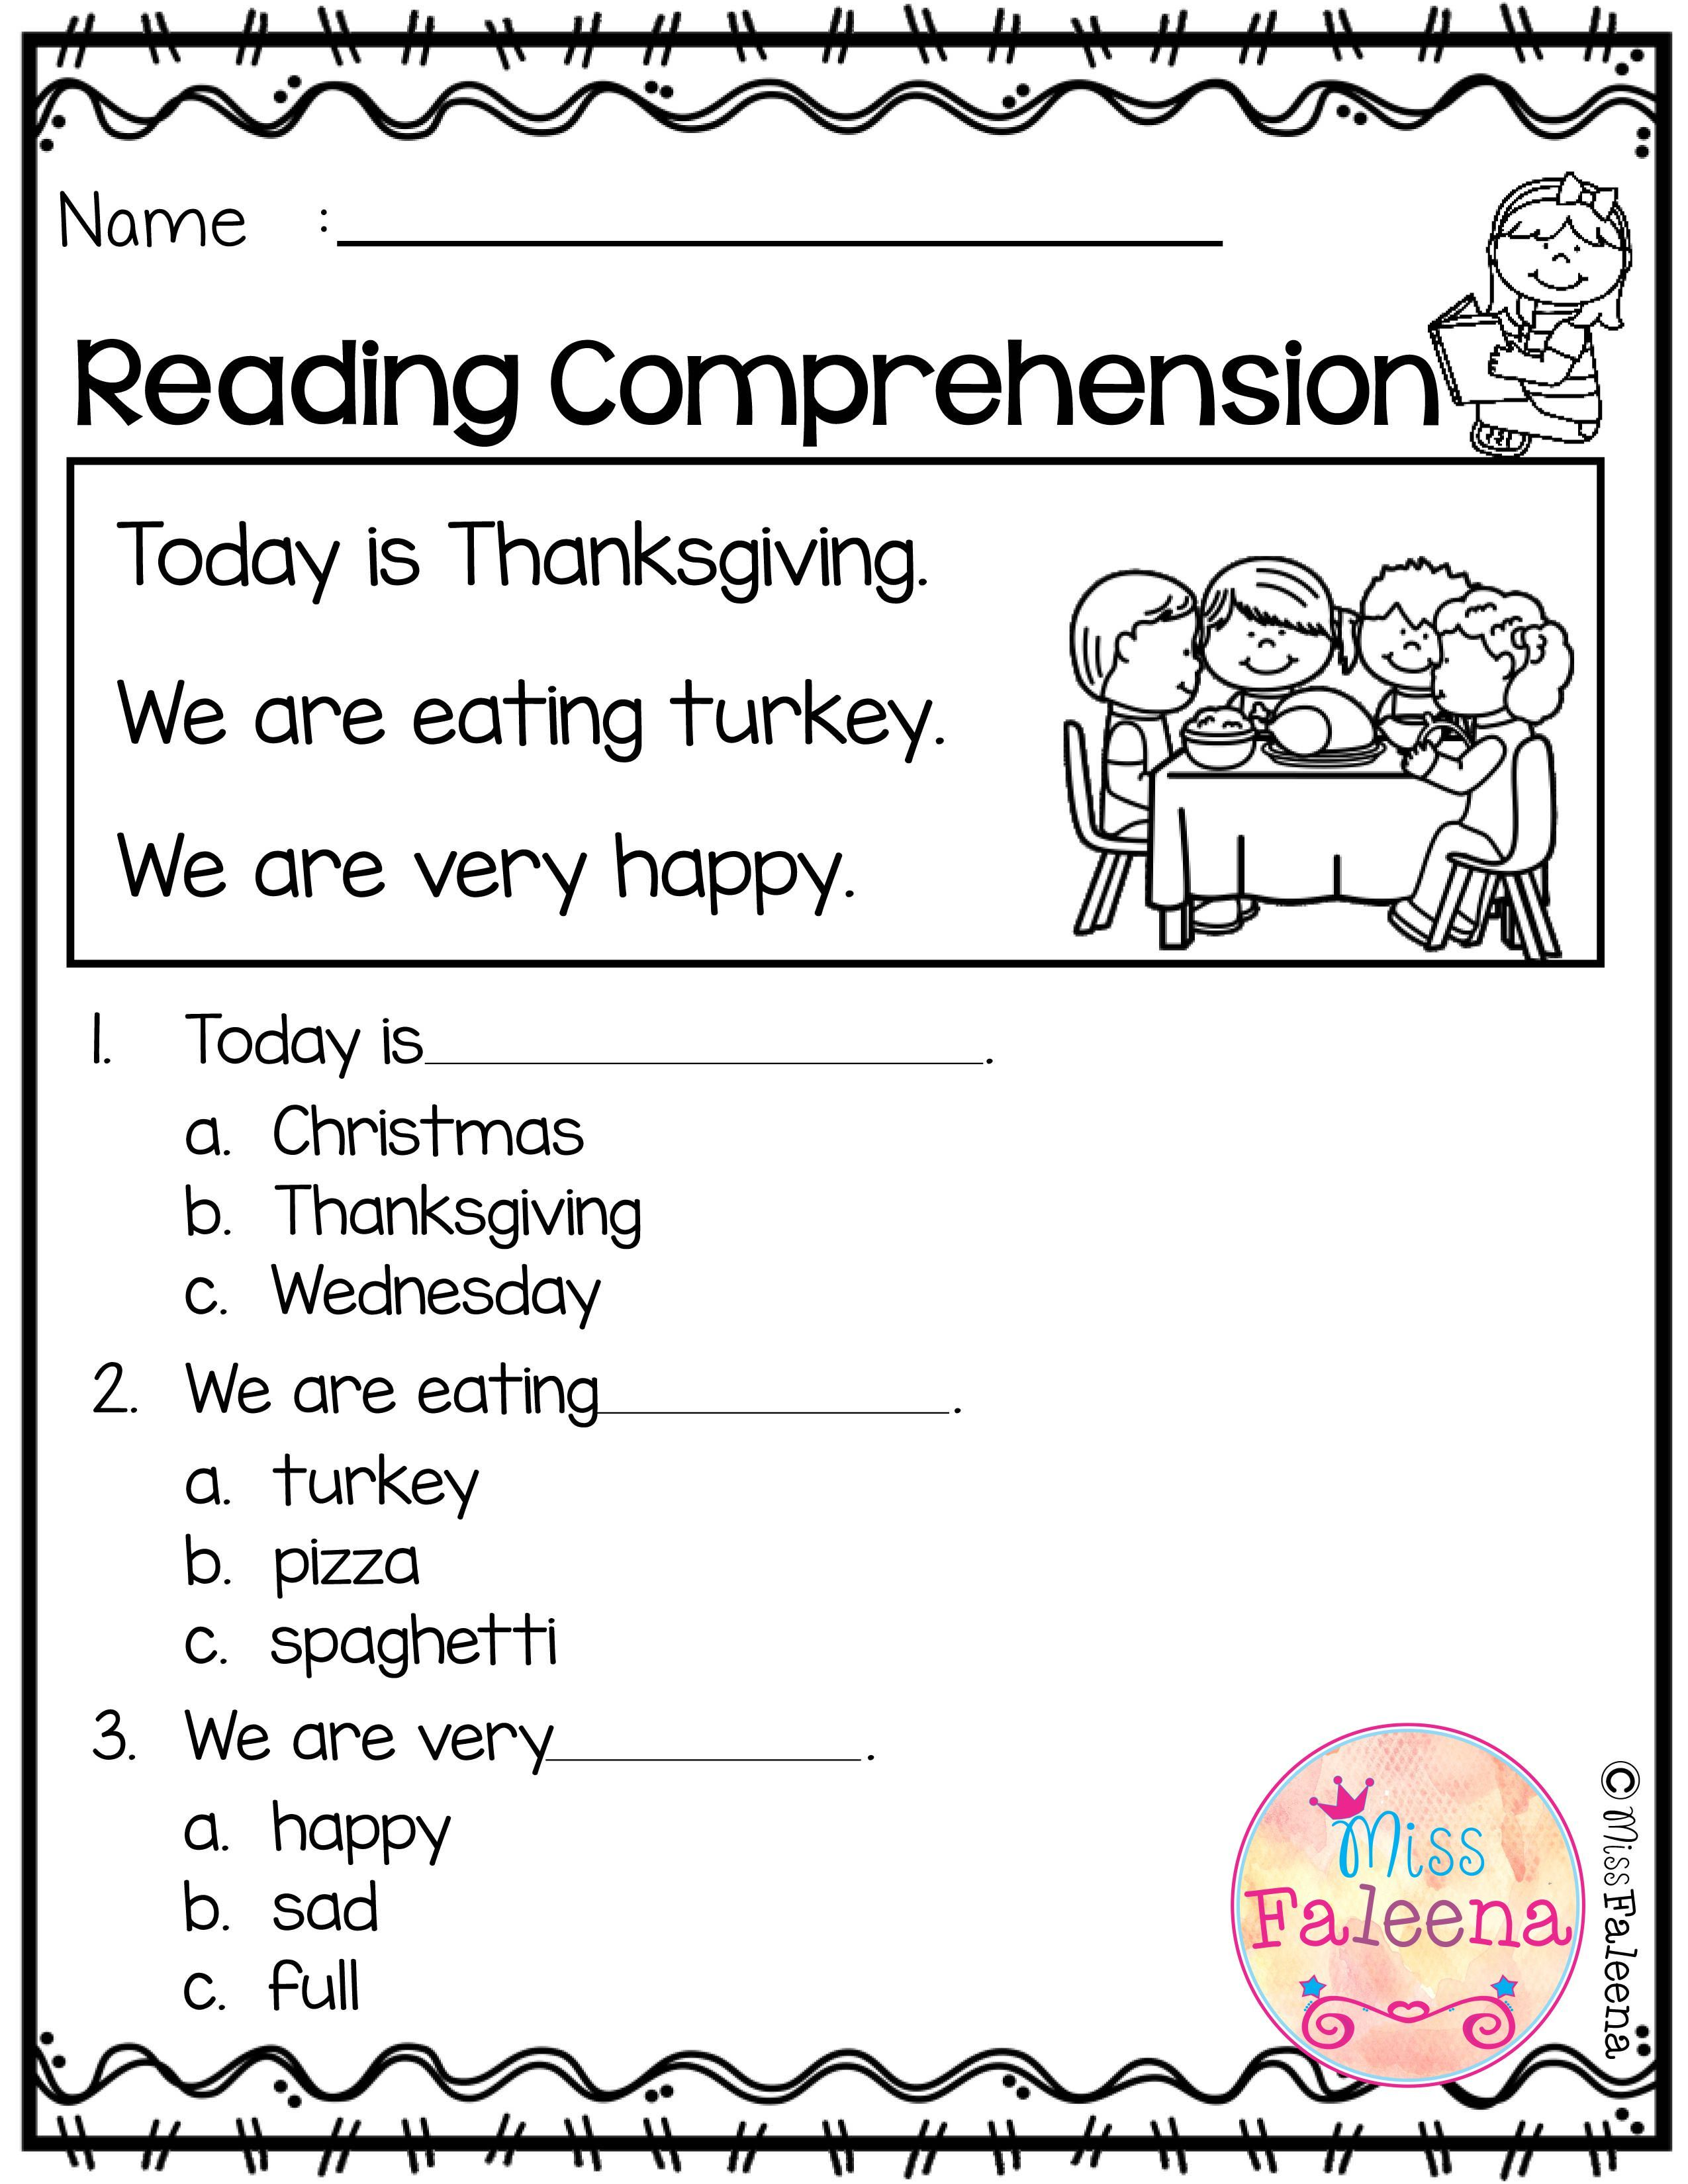 small resolution of 4th Grade Reading Comprehension Worksheets Thanksgiving   Printable  Worksheets and Activities for Teachers